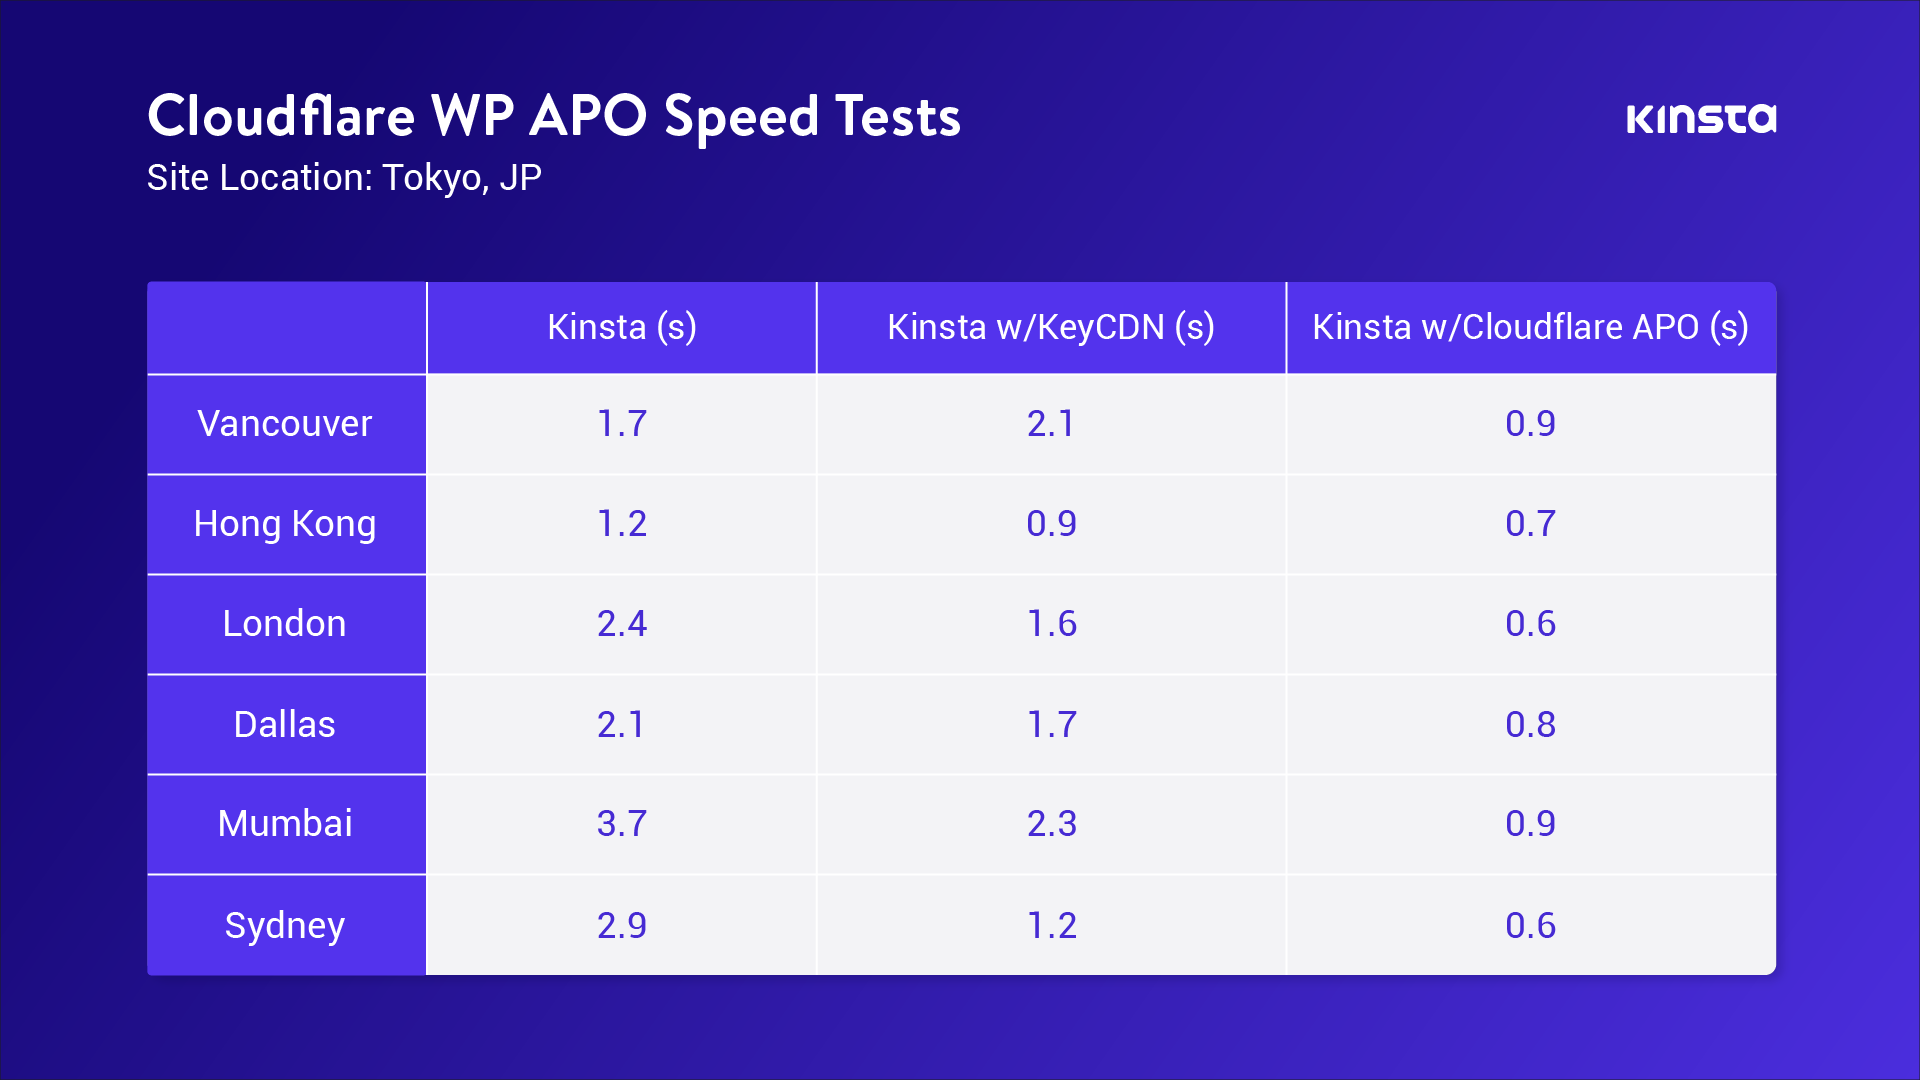 Enabling Cloudflare APO boosted WordPress performance up to 300%.